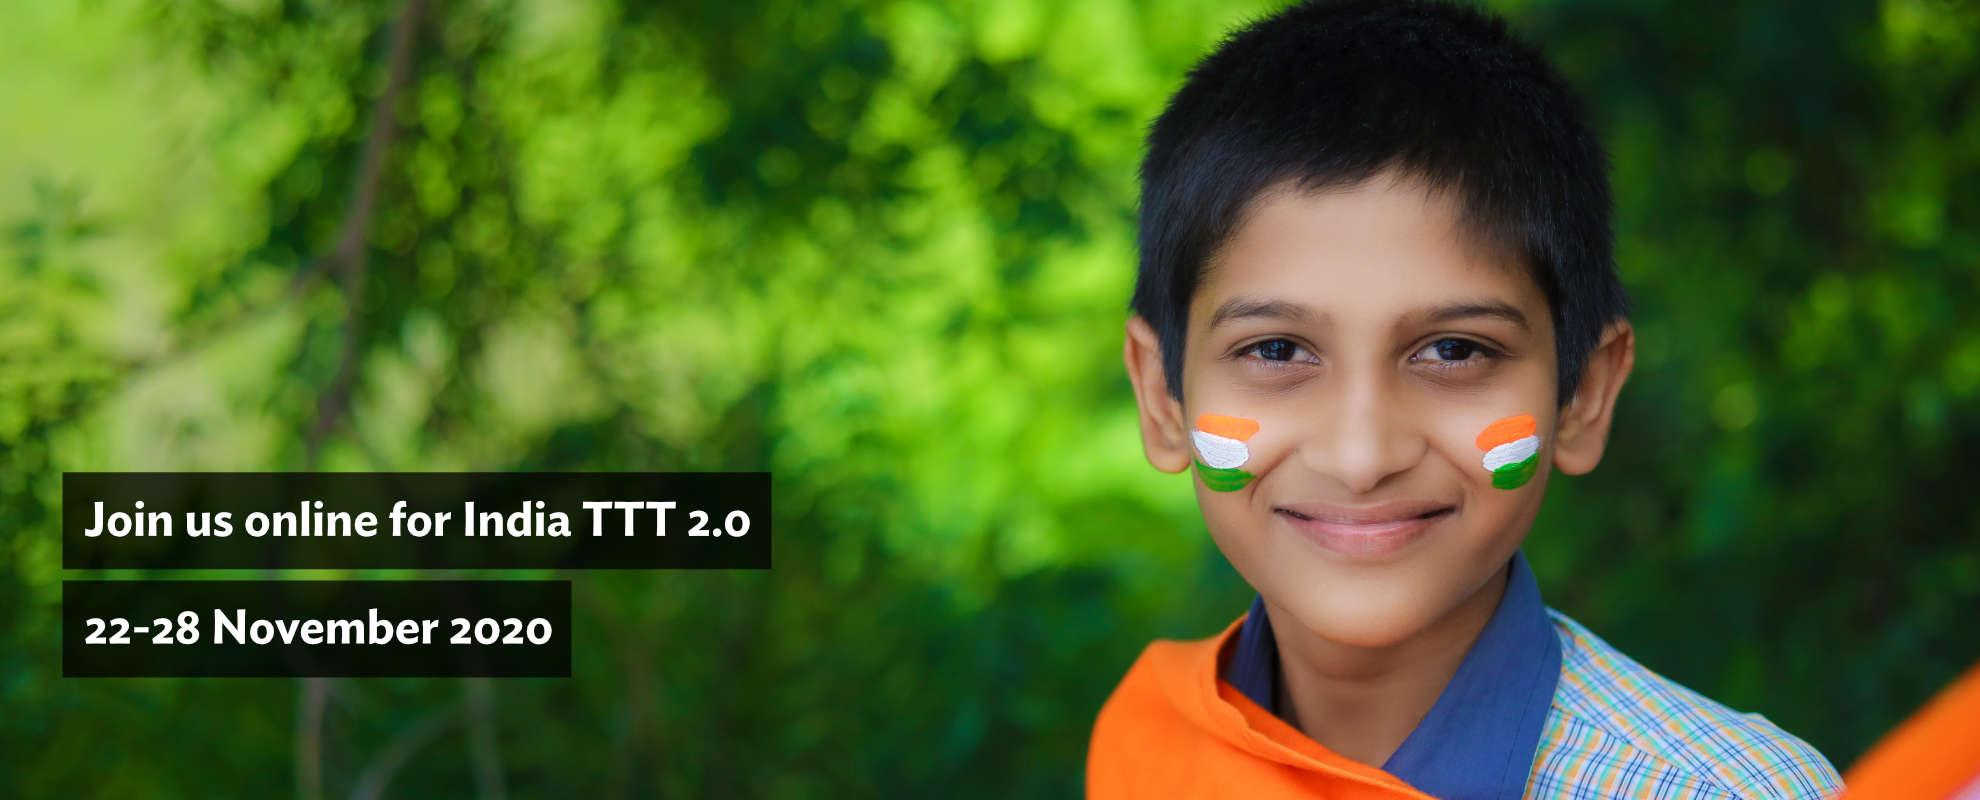 Join us for the India TTT 2.0